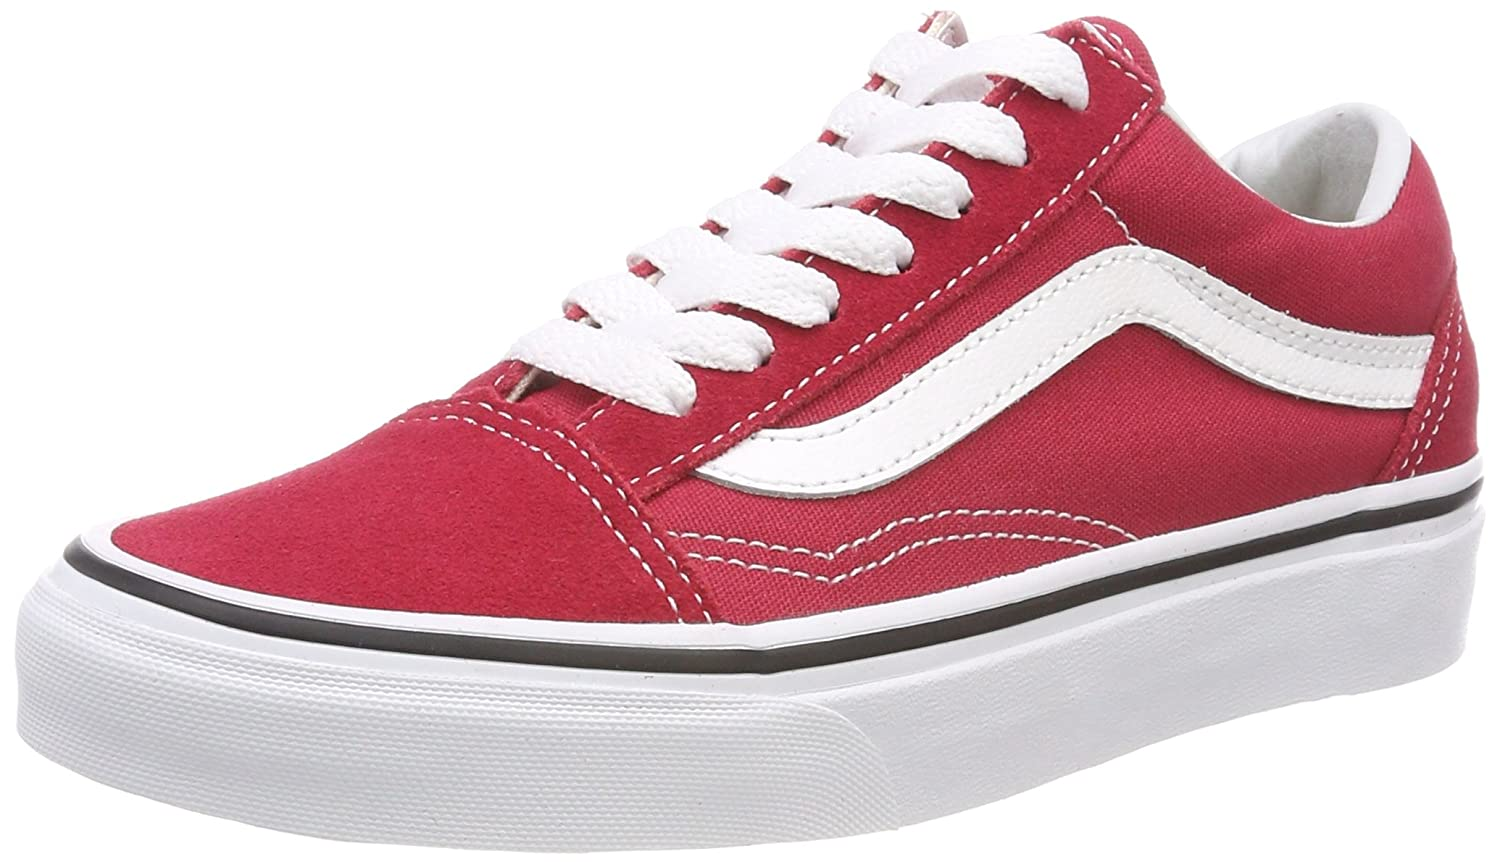 Vans Unisex Old Skool Classic Skate Shoes B074HC61BT Boys/Mens 11|Crimson/True White